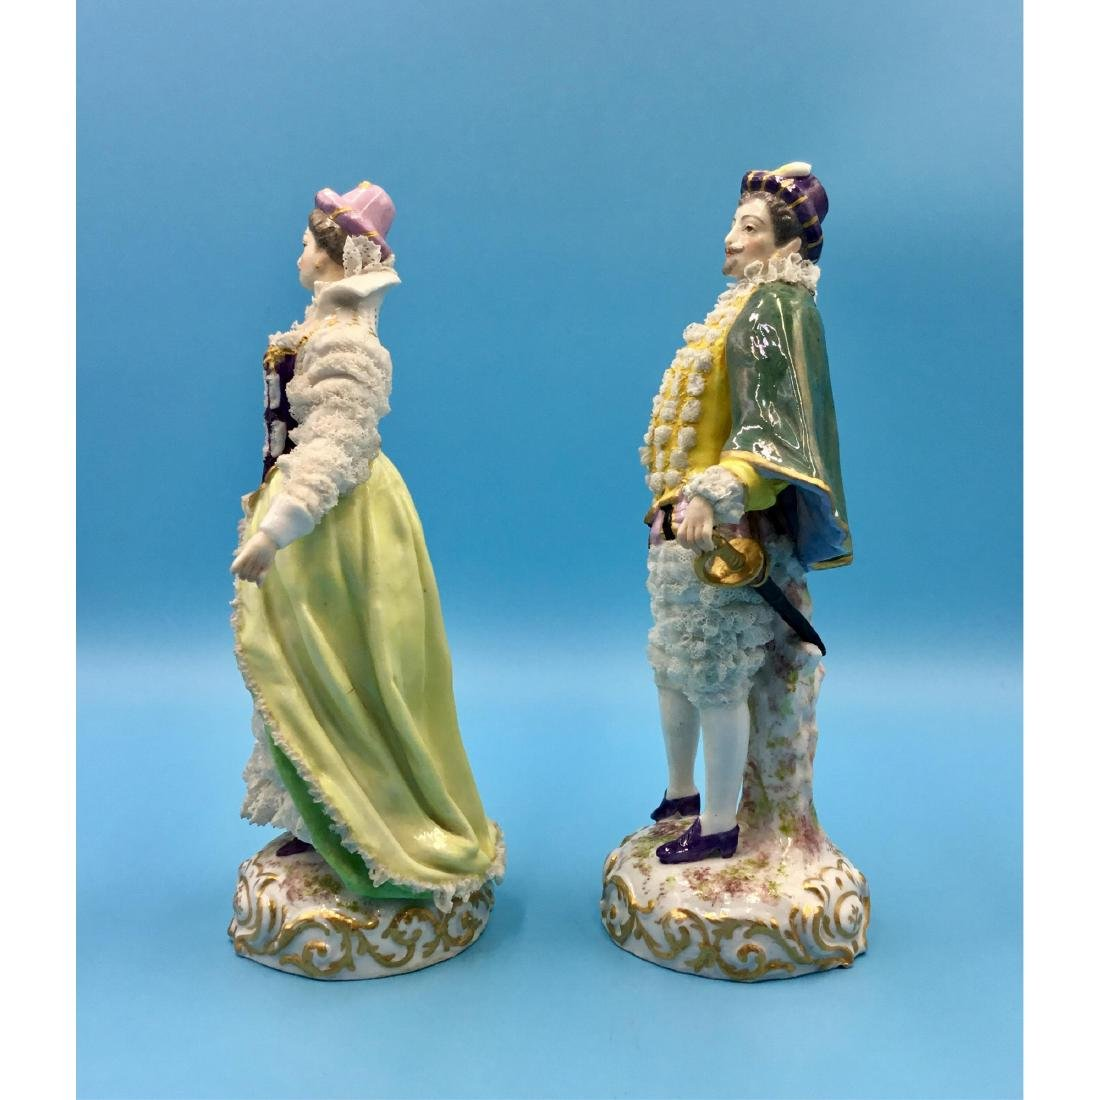 PAIR OF ACHILLE BLOCH FRENCH PORCELAIN FIGURINES - 2